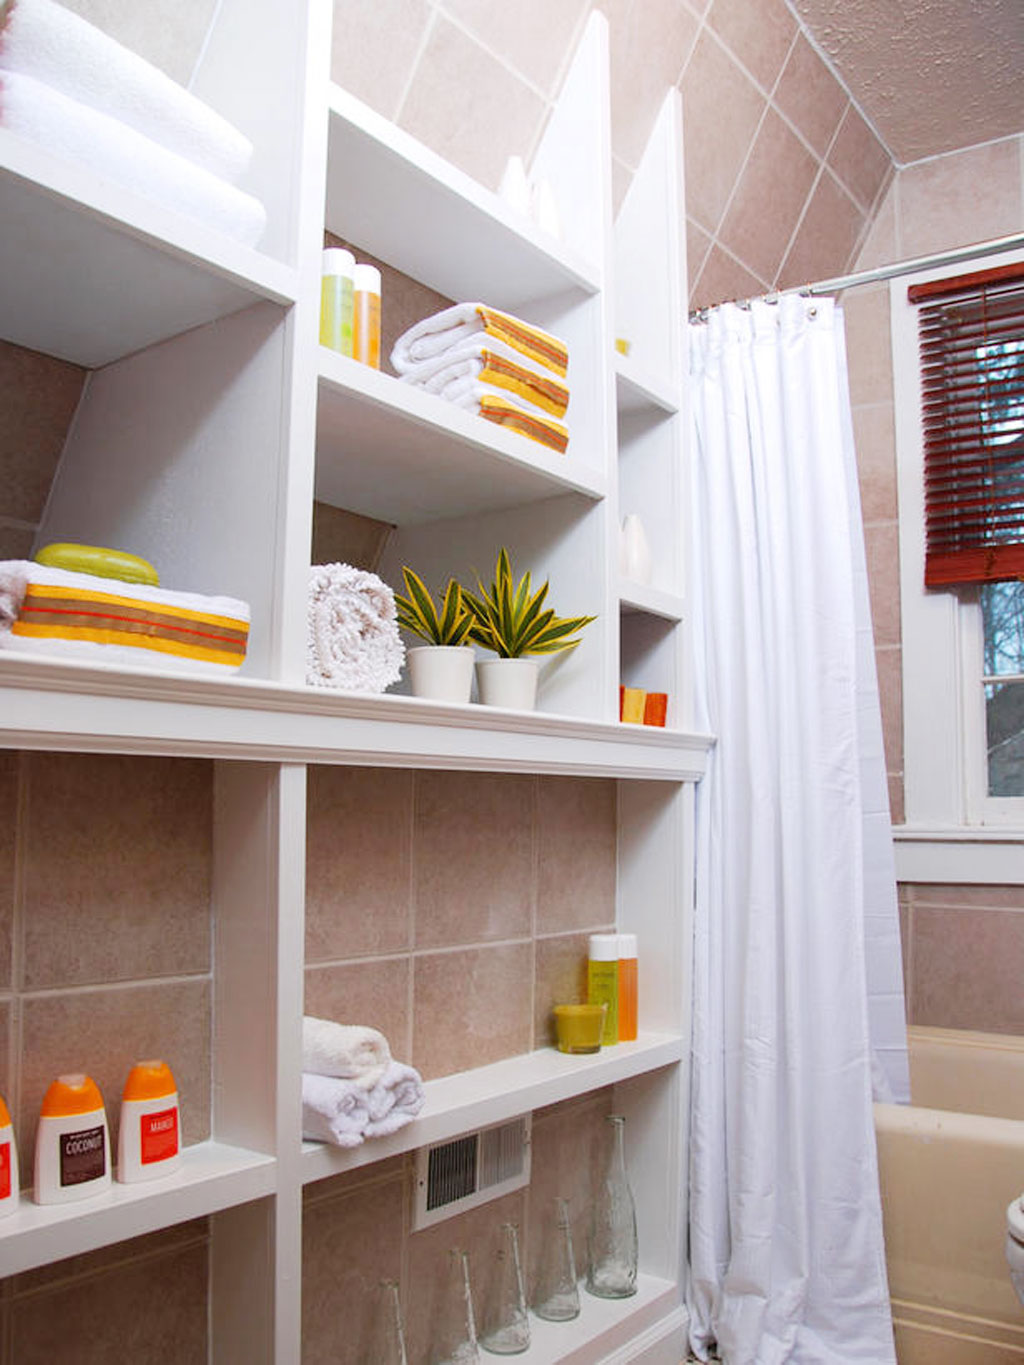 Great 6 Photos Of The Efficient Bathroom Storage Ideas For Small Spaces